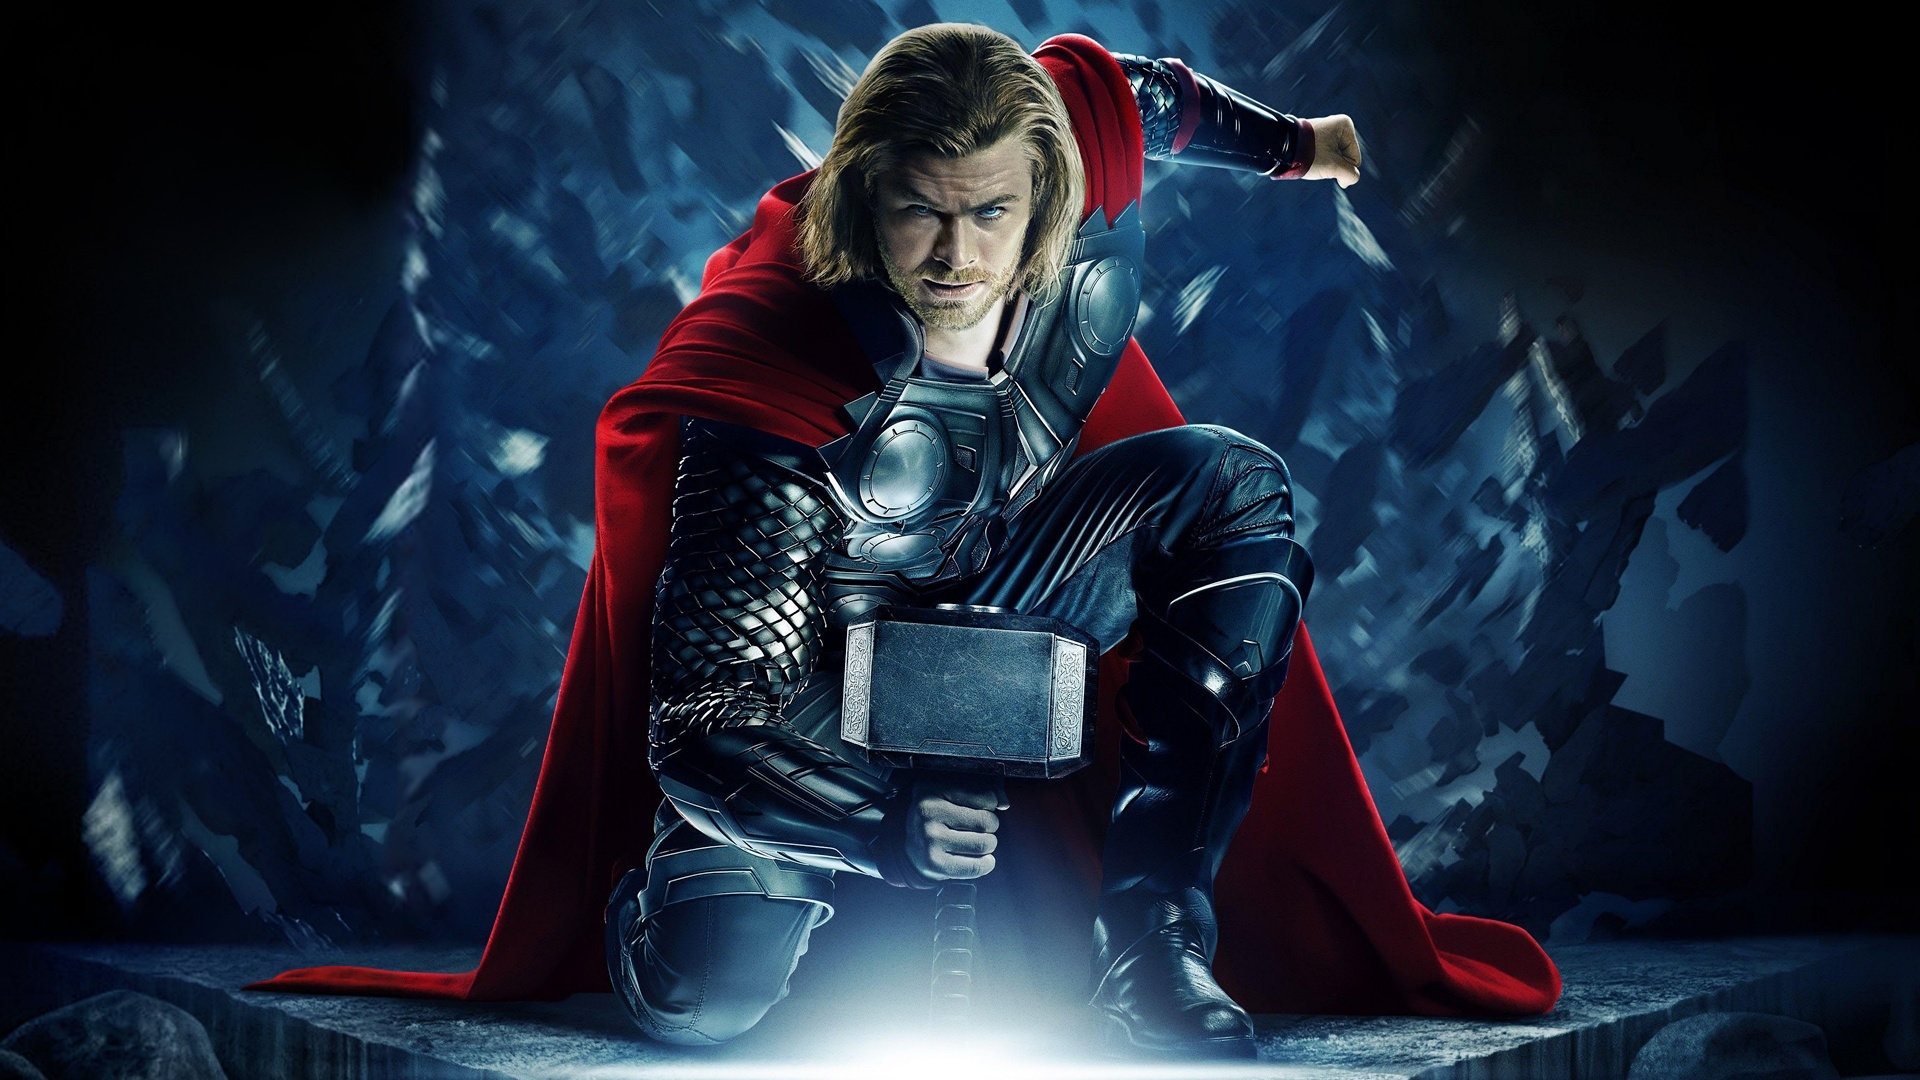 Free Thor high quality wallpaper ID:194350 for full hd 1920x1080 desktop